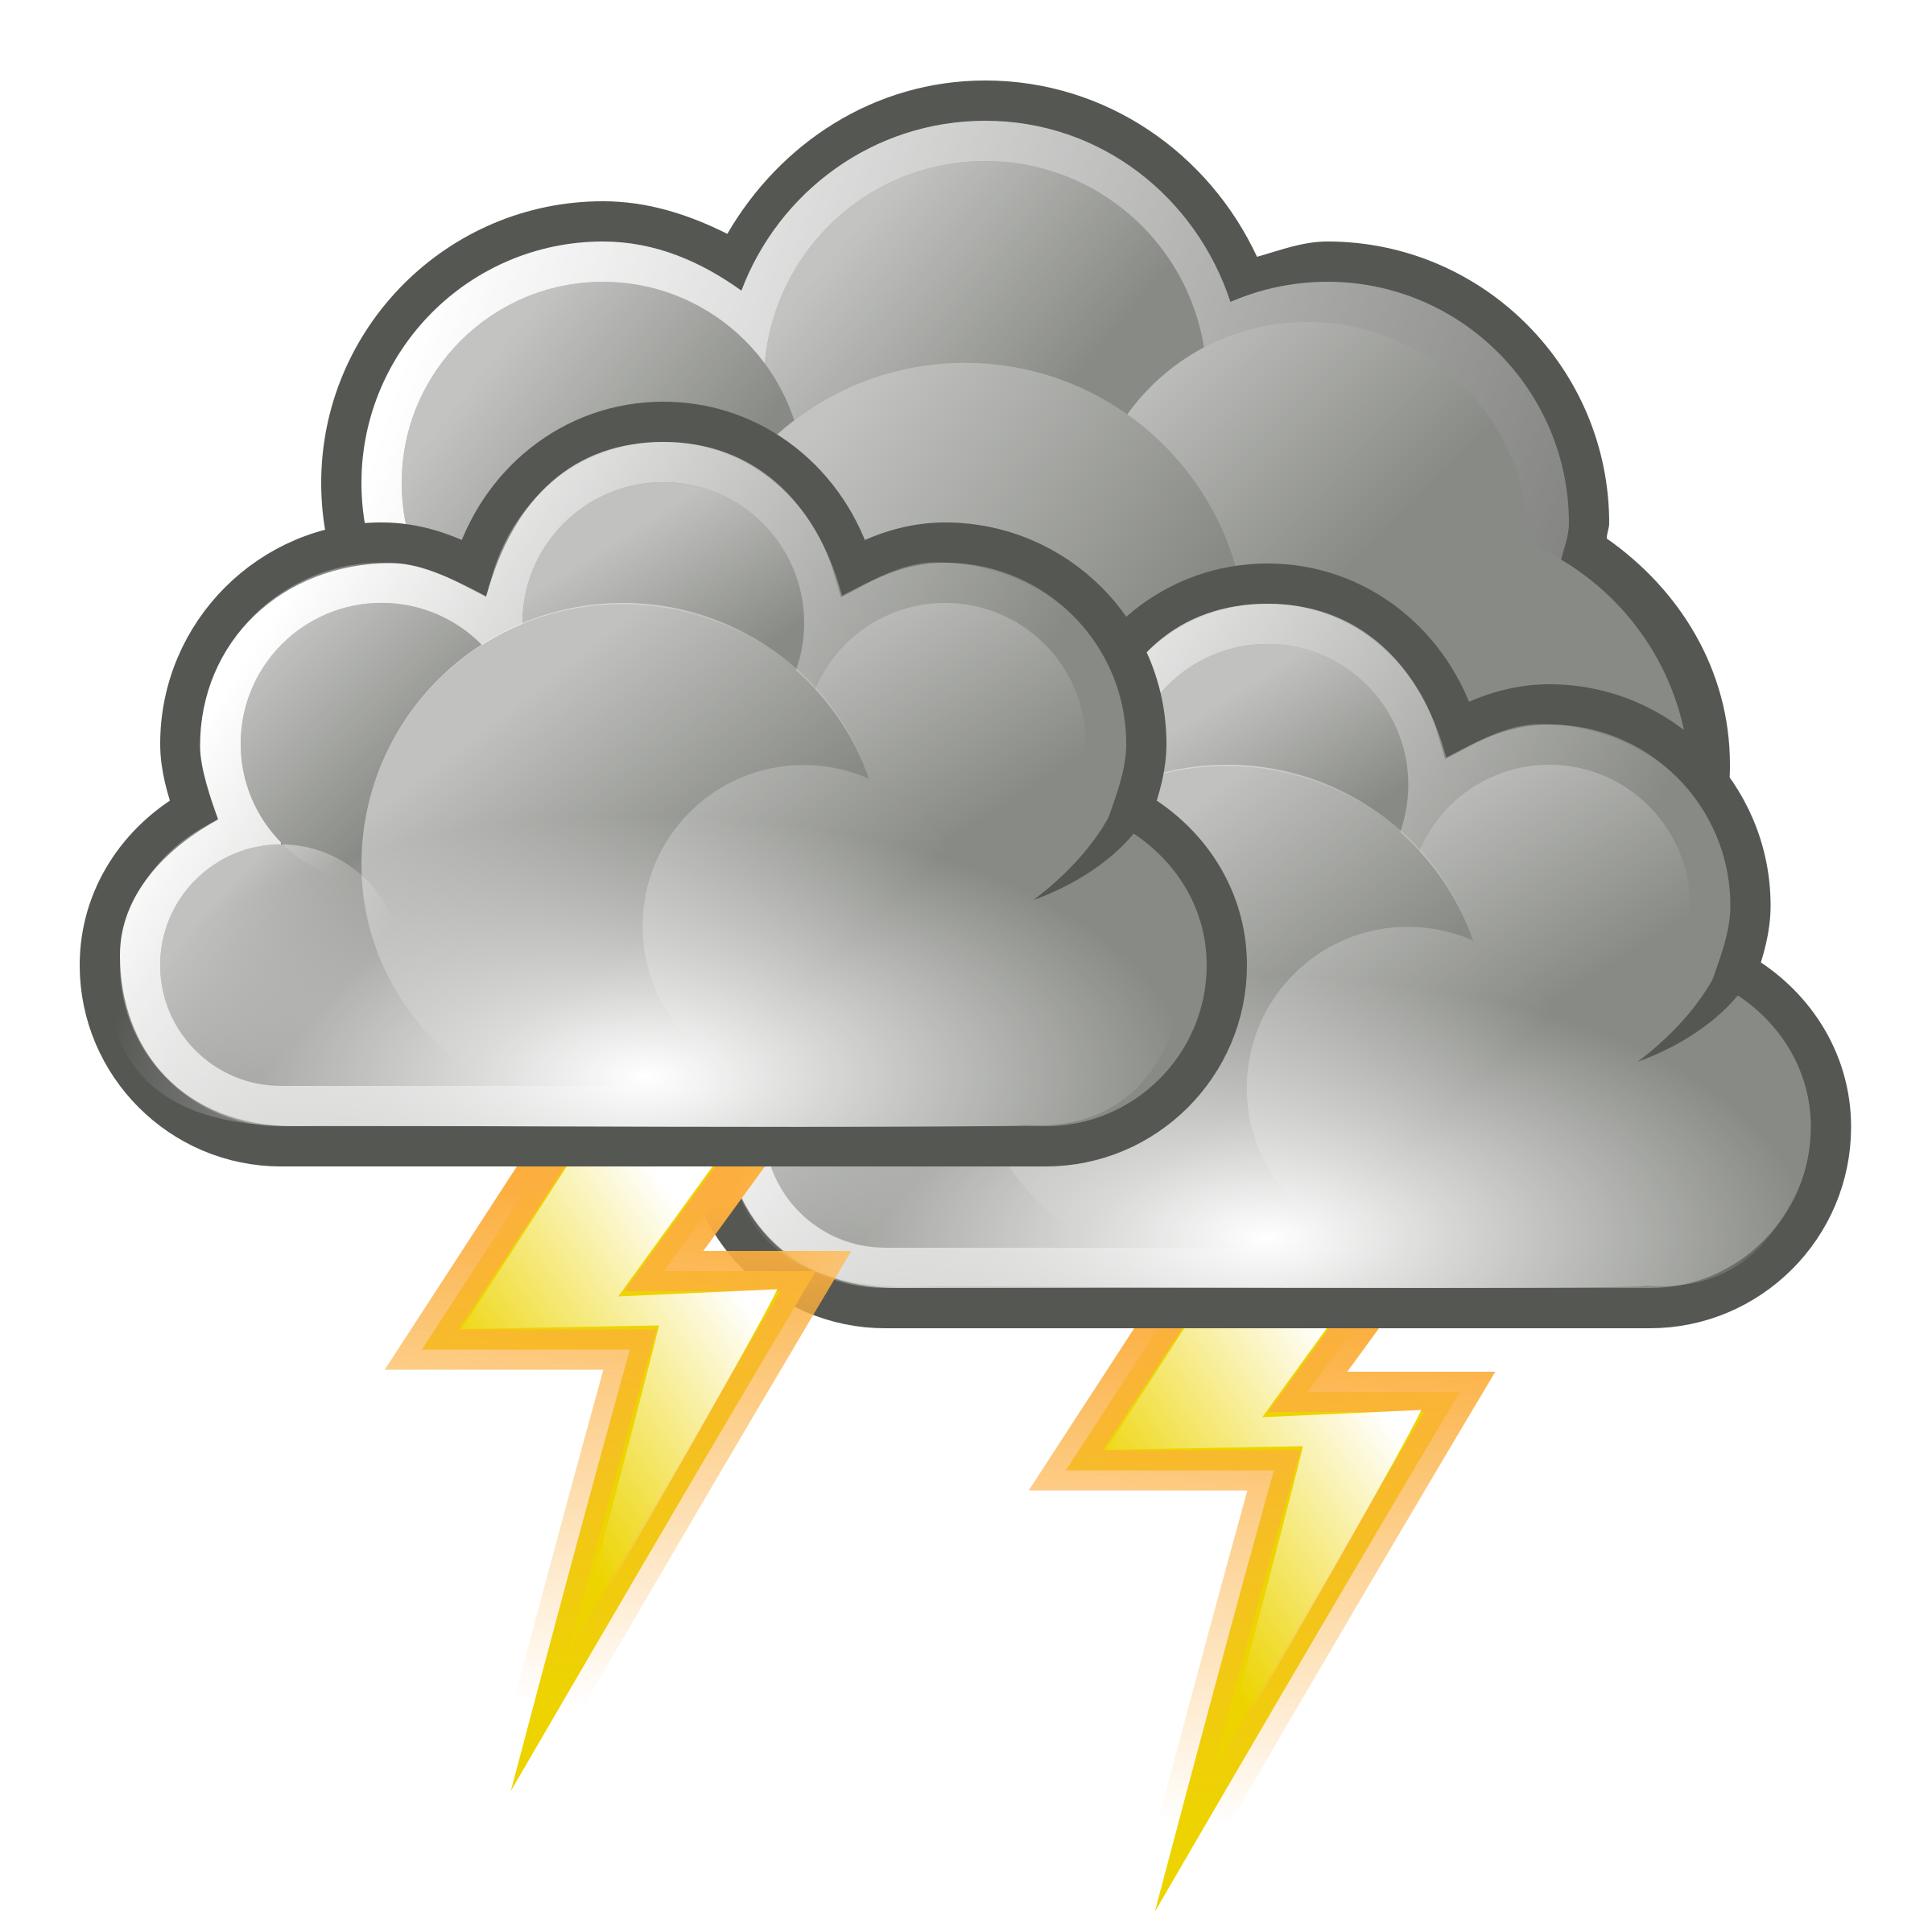 Clipart Of Storm.